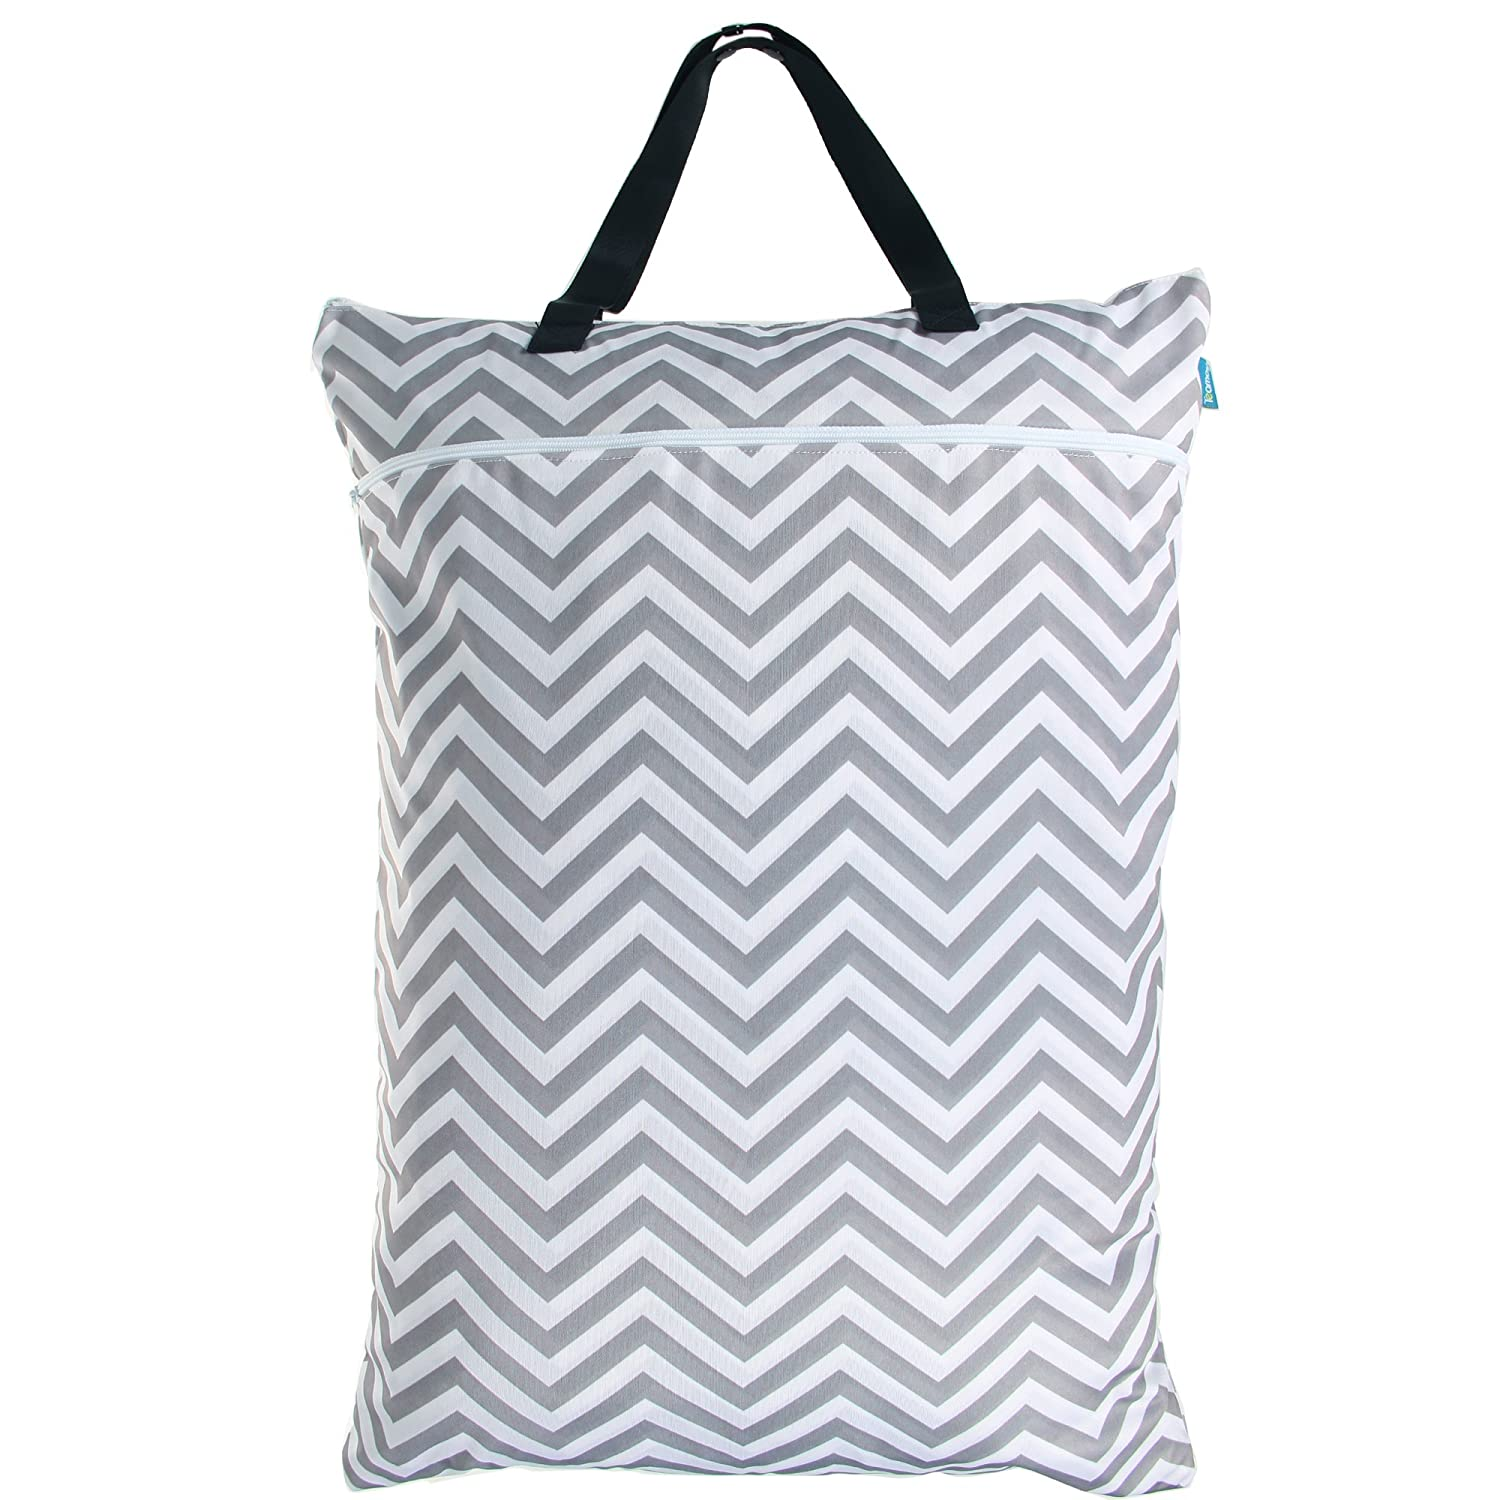 Teamoy Travel Hanging Wet Dry Bag(24.7 * 18 inches) for Cloth Diapers Organizer Tote Bag (XL, Blue Chevron)